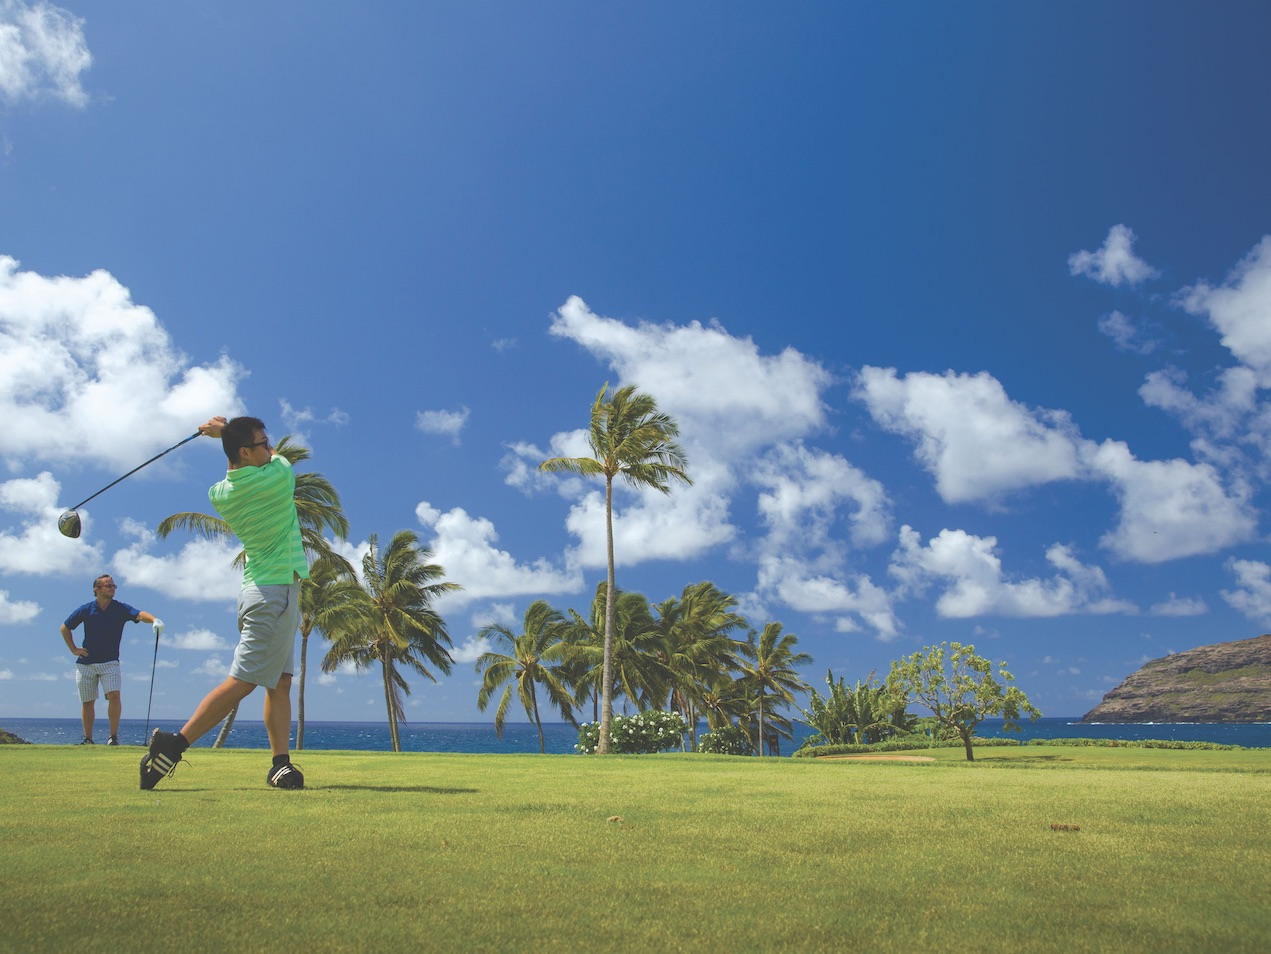 Two friends teeing off at an ocean front golf course. Blue skies and palm trees in the background.